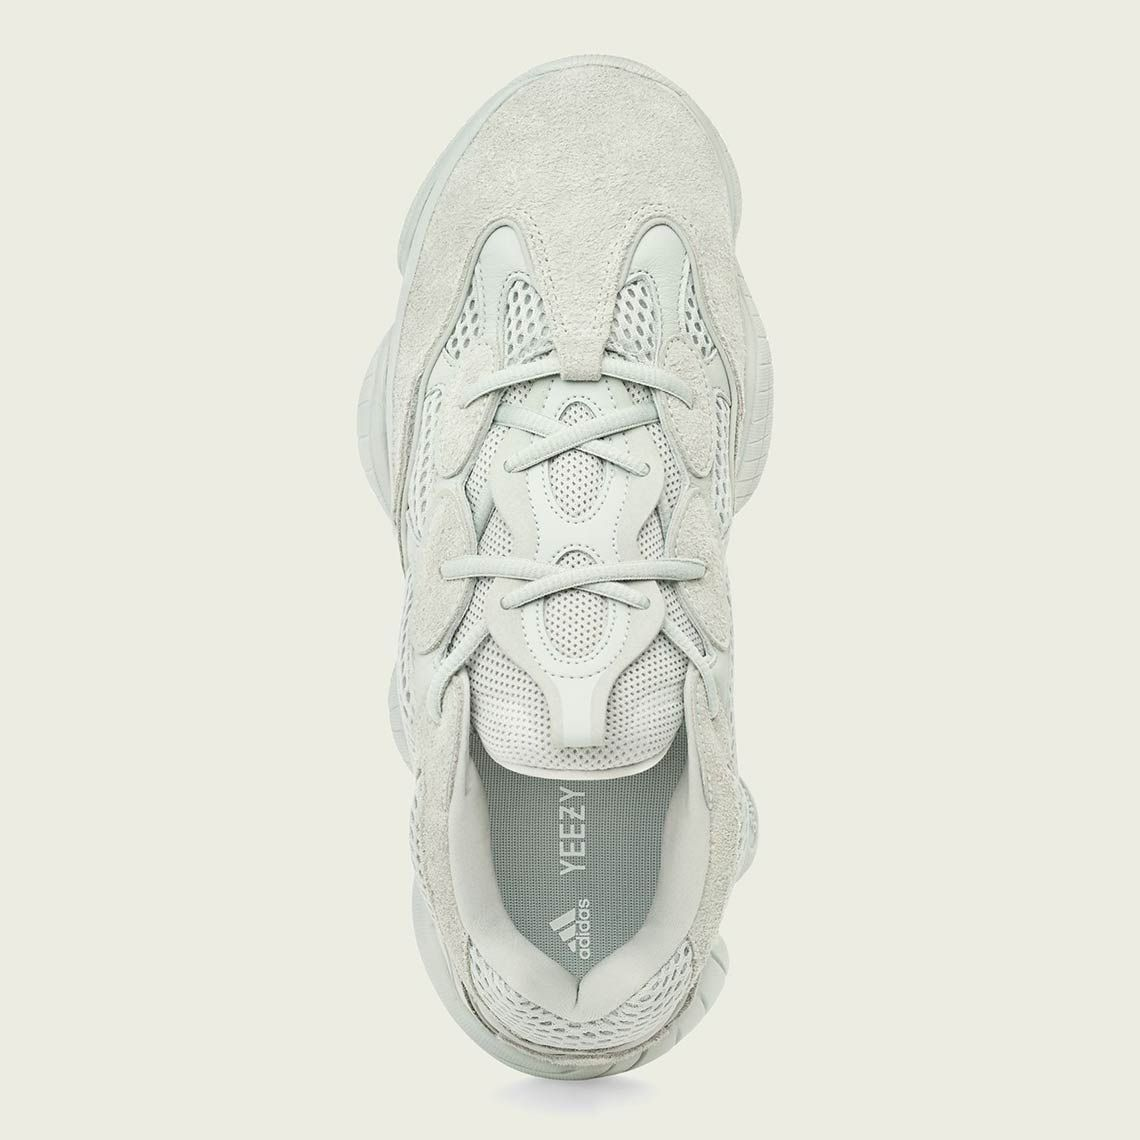 bdbe3b2a29dbf adidas Yeezy 500 Salt EE7287 Where To Buy